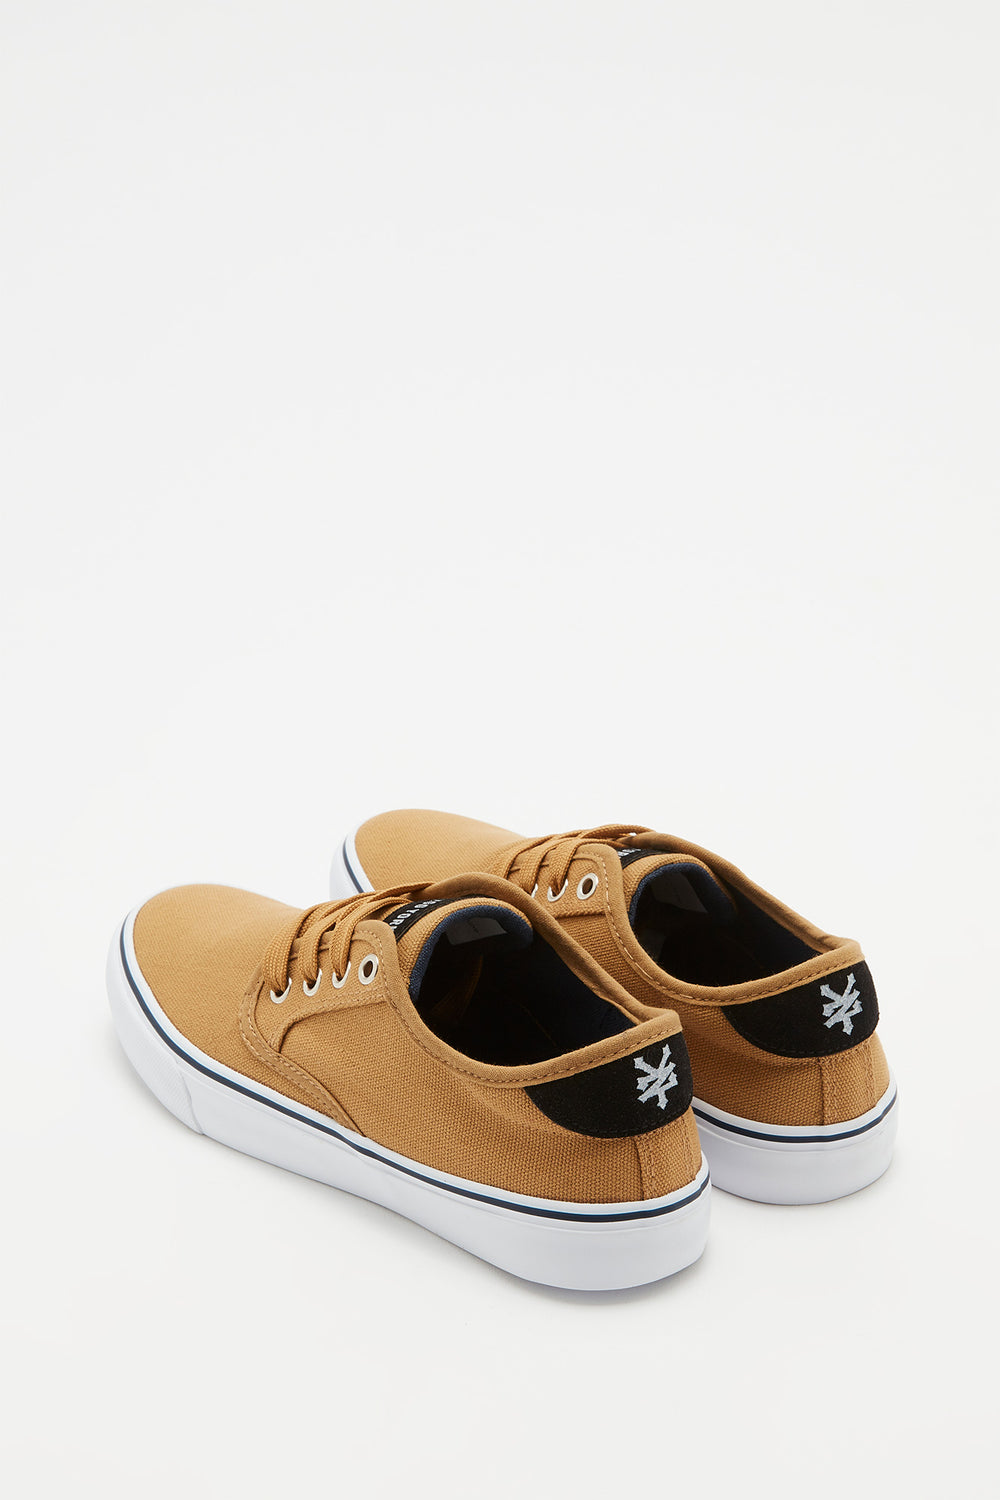 Zoo York Boys Canvas Skate Shoes Tan